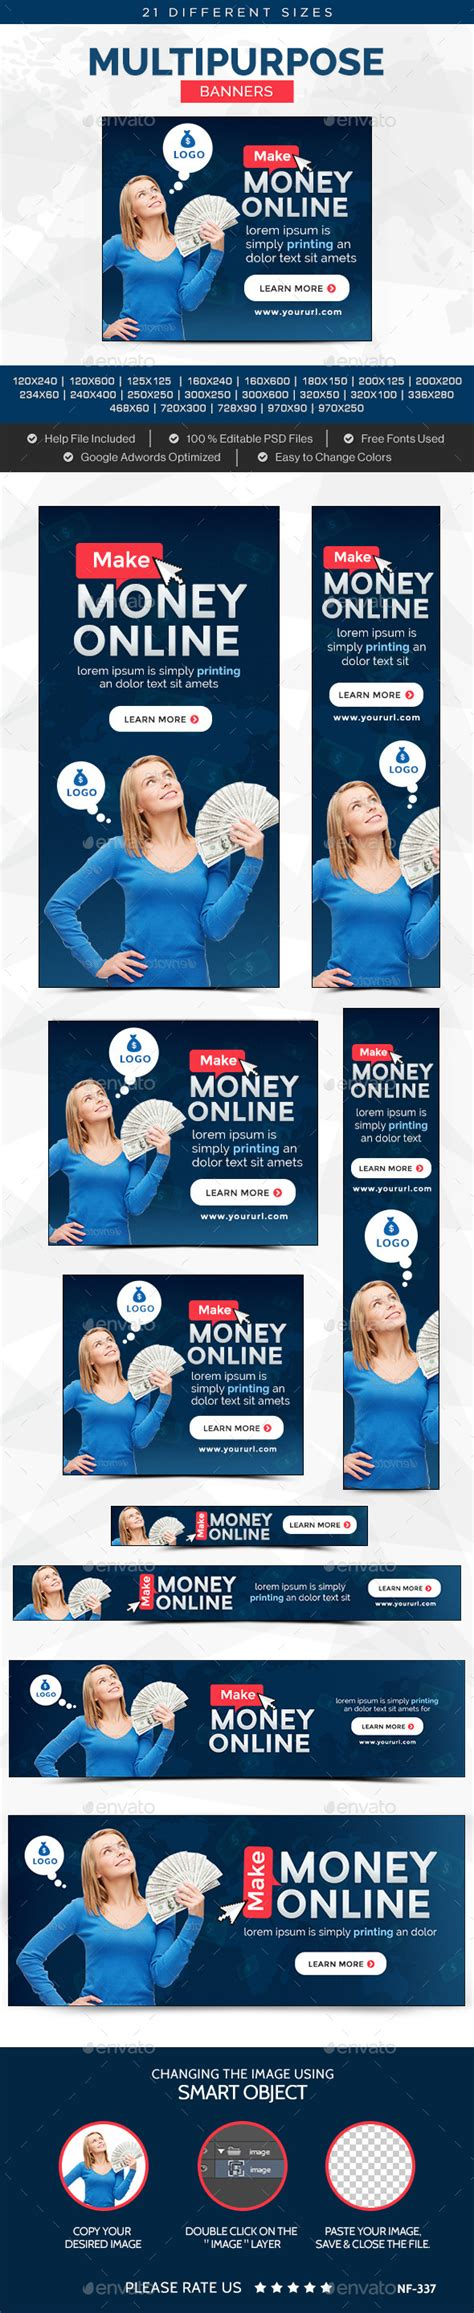 Make Money Online Banner - make money online banners by doto graphicriver